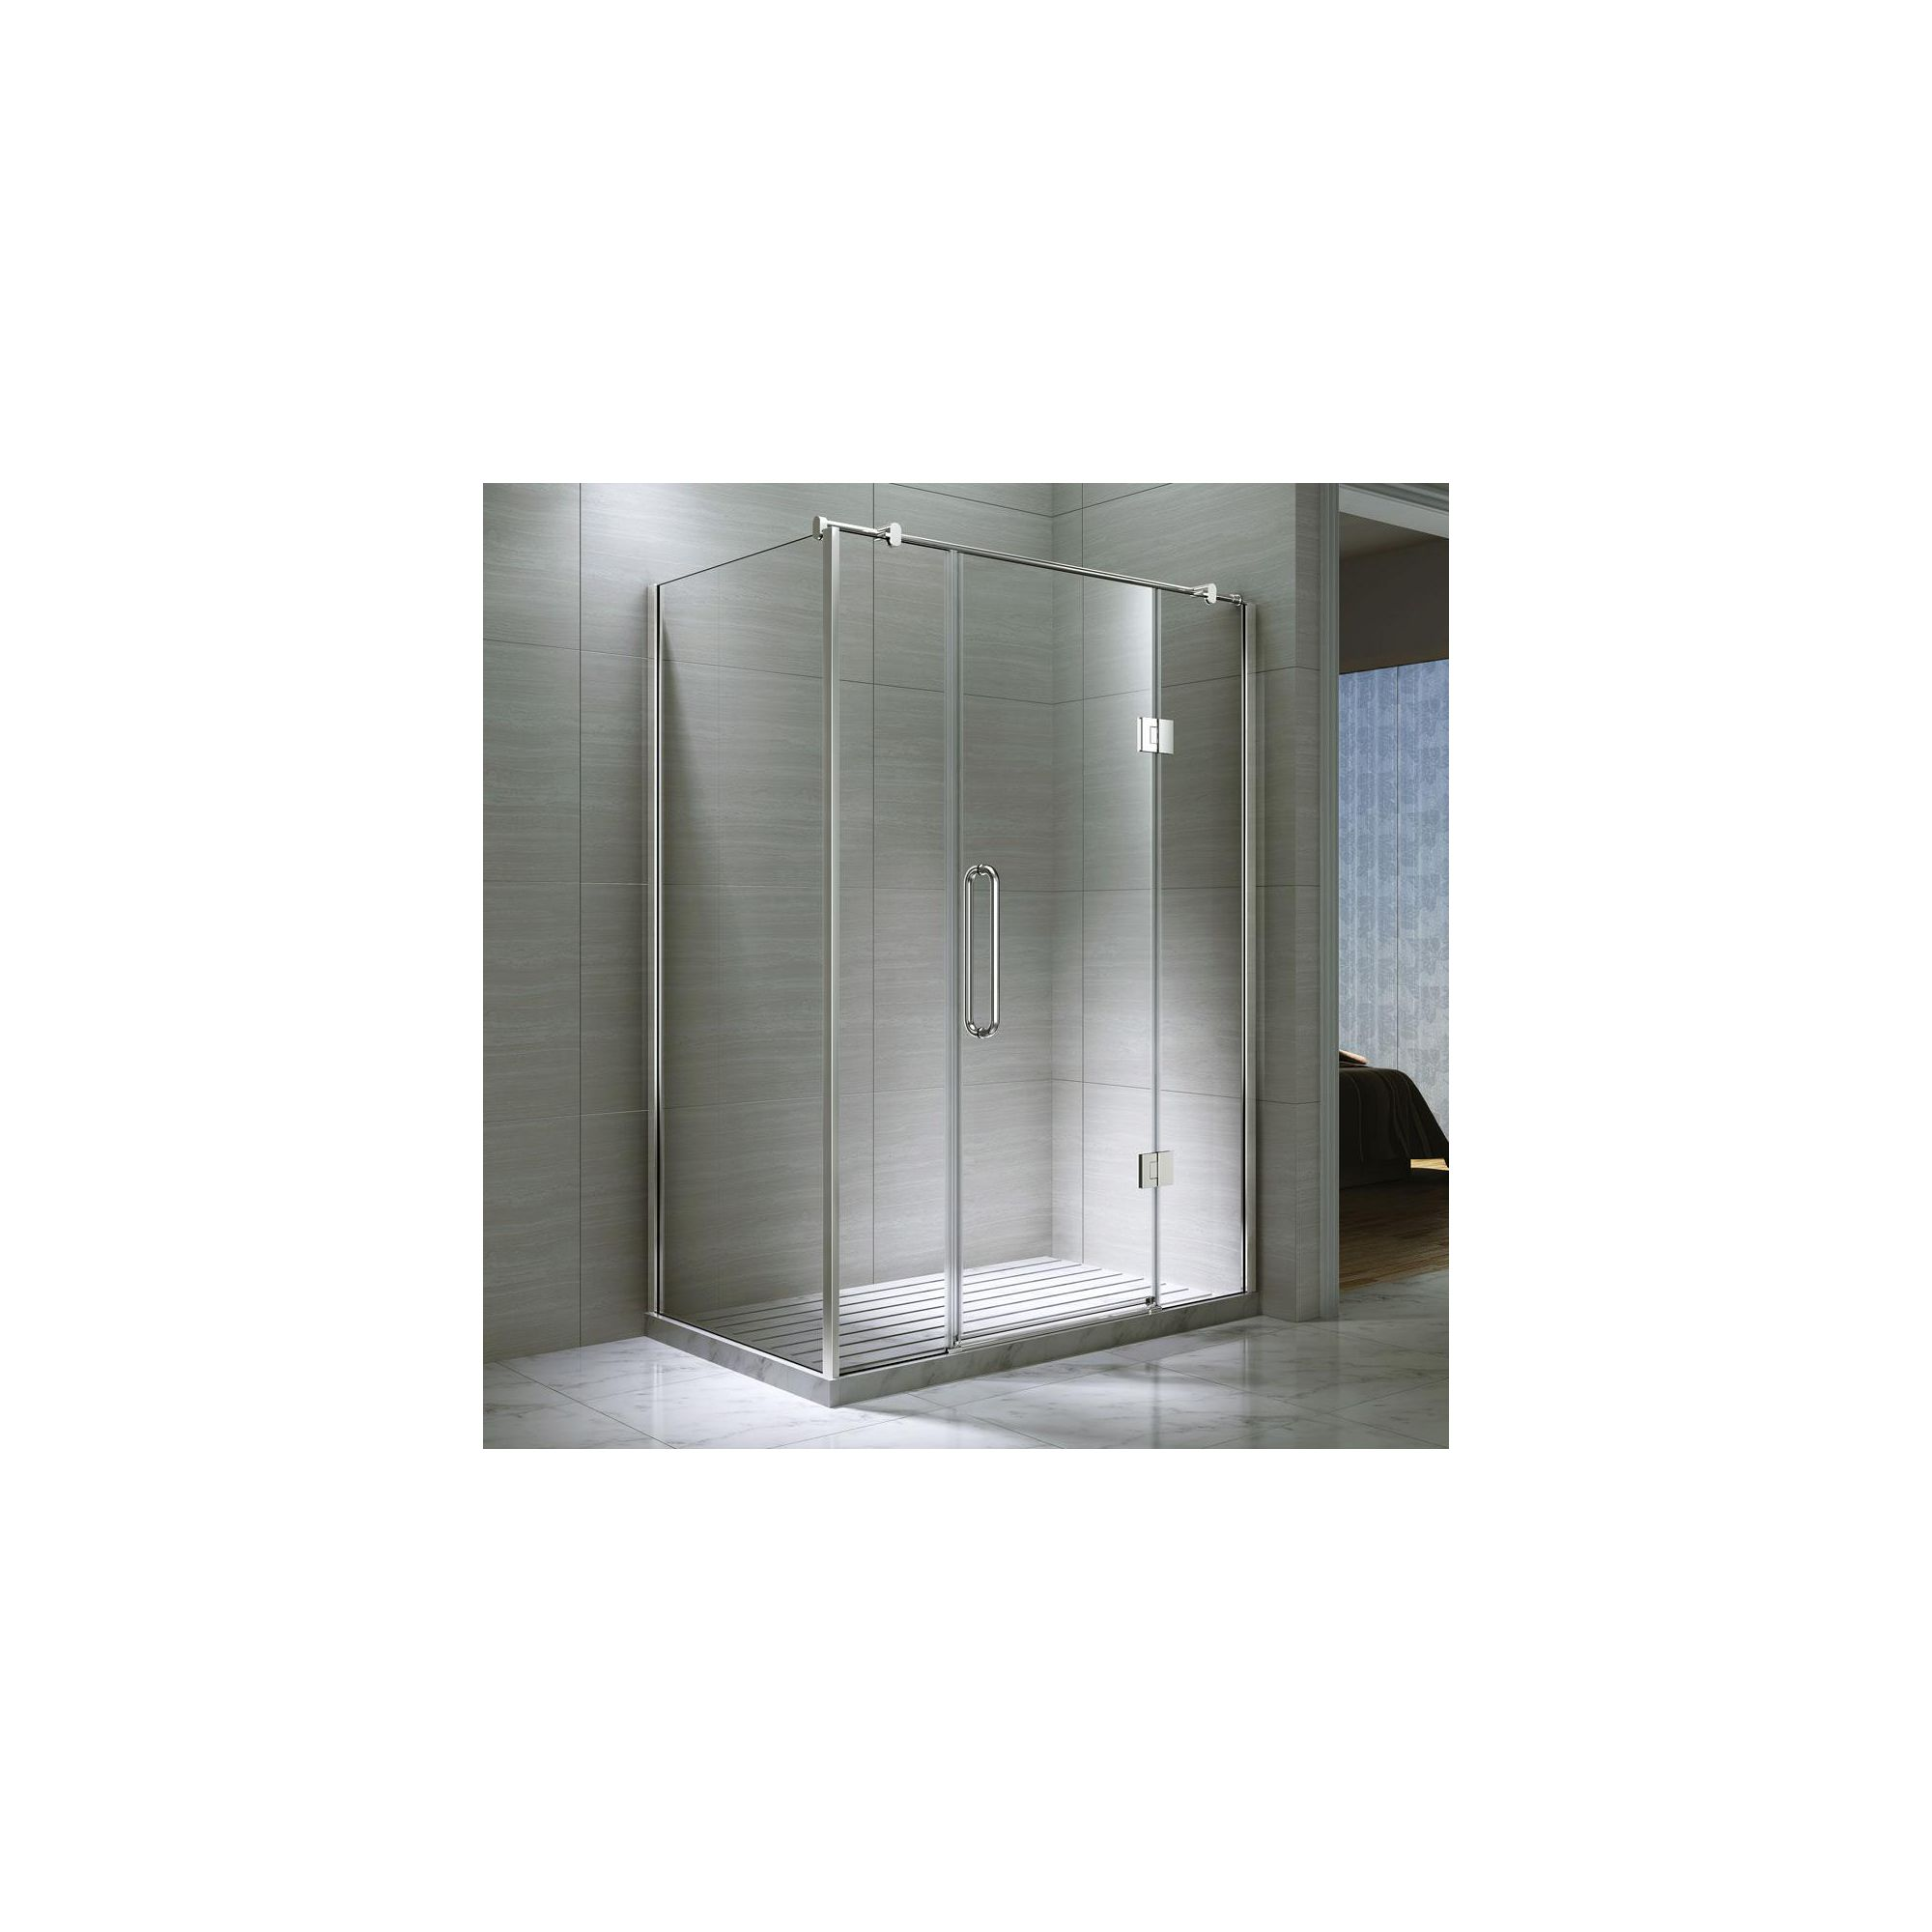 Desire Ten Double Inline Hinged Shower Door with Side Panel, 1400mm x 900mm, Semi-Frameless, 10mm Glass at Tesco Direct